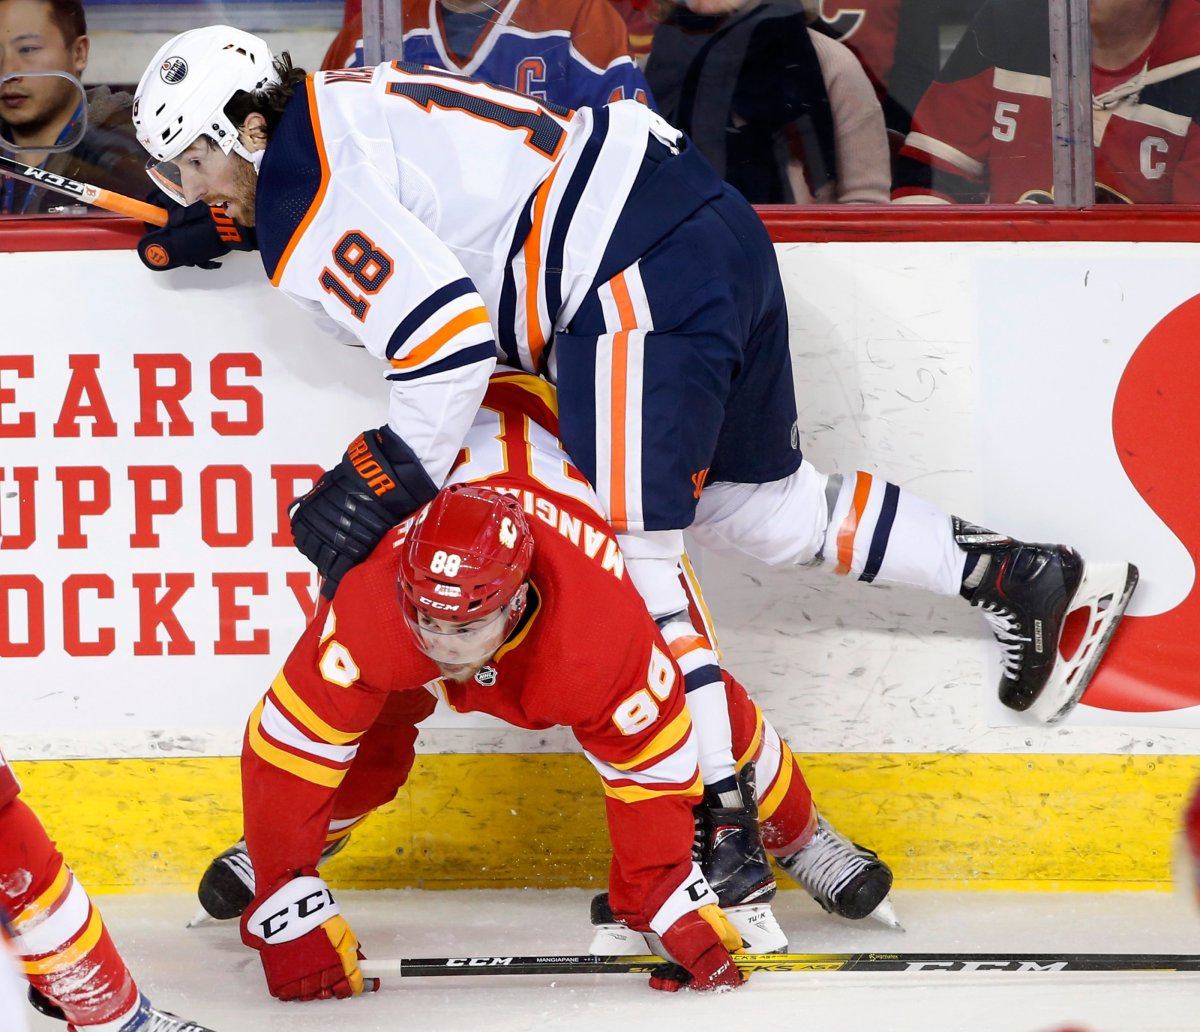 Edmonton Oilers' James Neal, top, knocks down Calgary Flames' Andrew Mangiapane during first period NHL hockey action in Calgary, Alta., Saturday, Jan. 11, 2020. THE CANADIAN PRESS/Larry MacDougal.